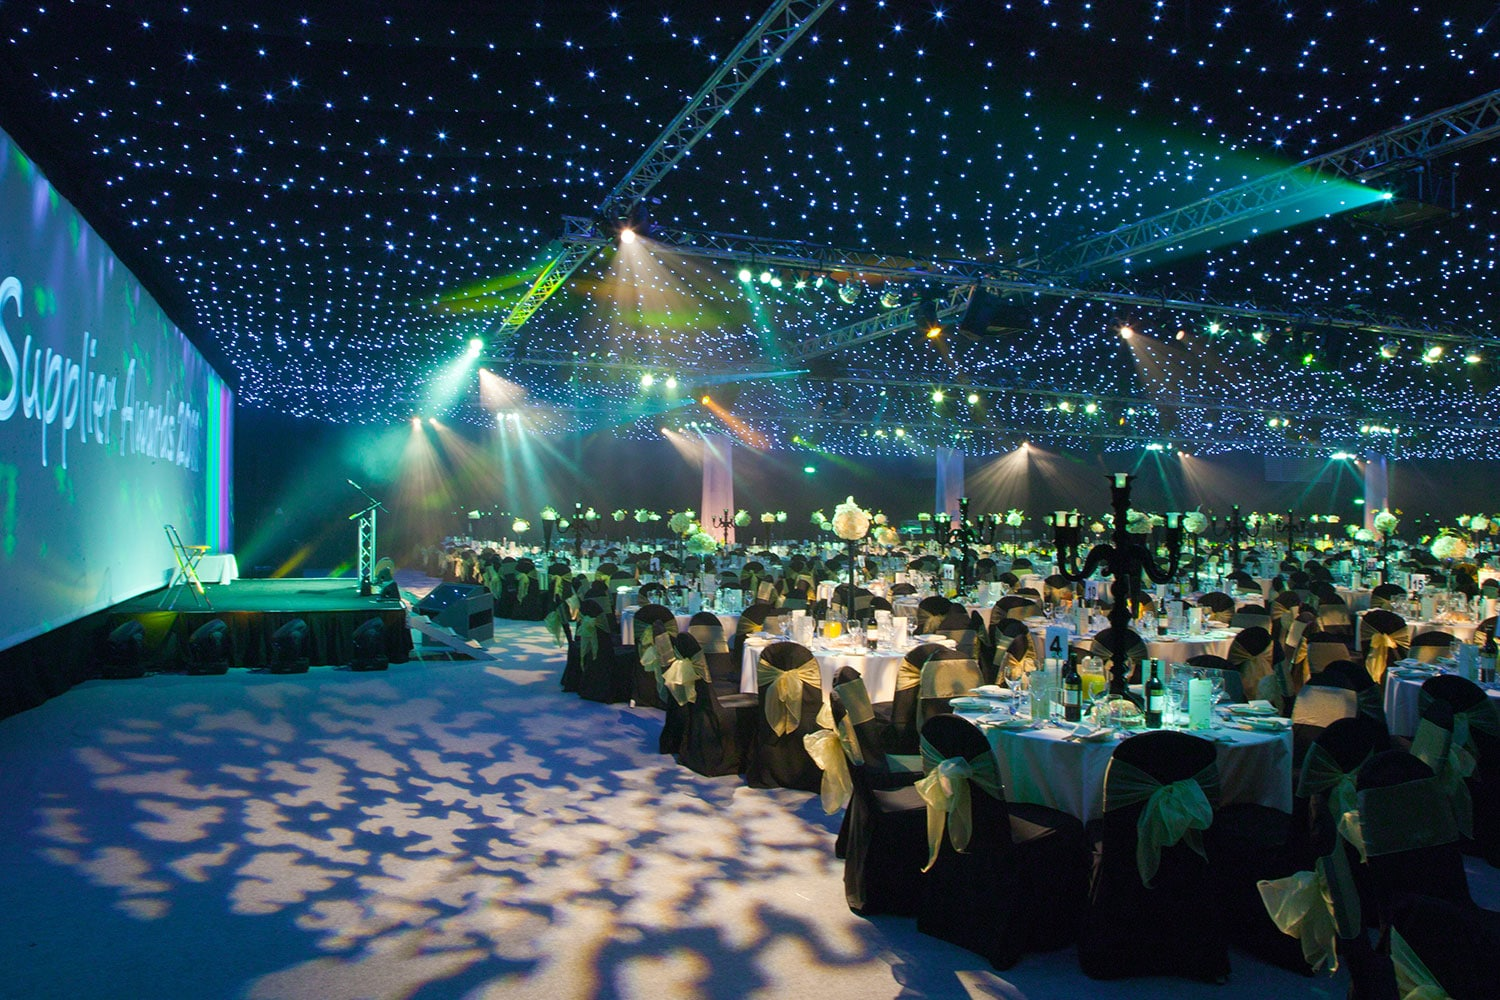 Dinners and awards at the Yorkshire Event Centre